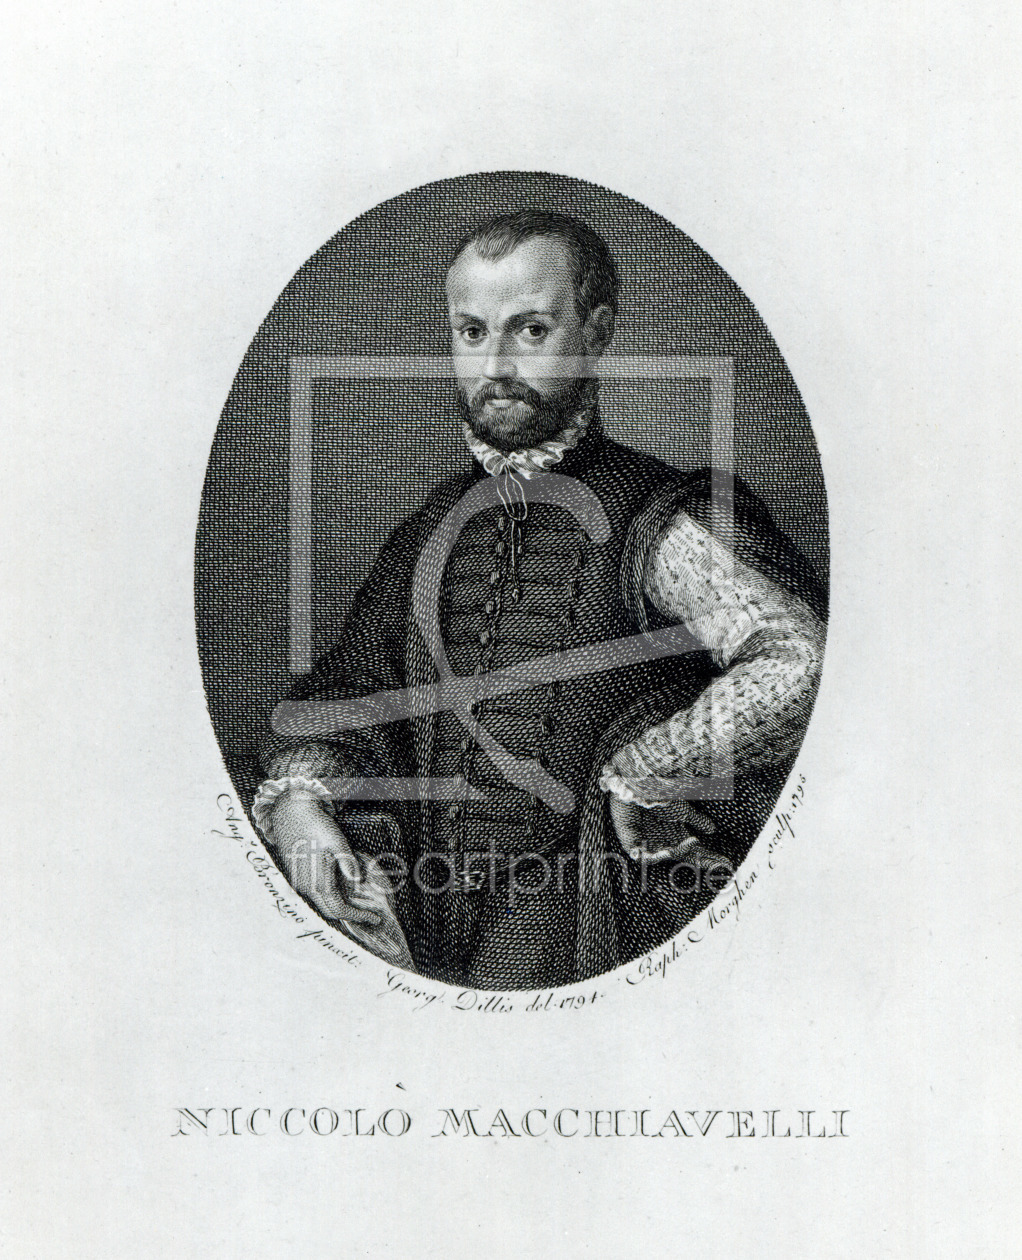 Bild-Nr.: 31000128 Portrait of Niccolo Machiavelli , engraved by Rafaello Morgan in 1795 erstellt von Bronzino, Agnolo